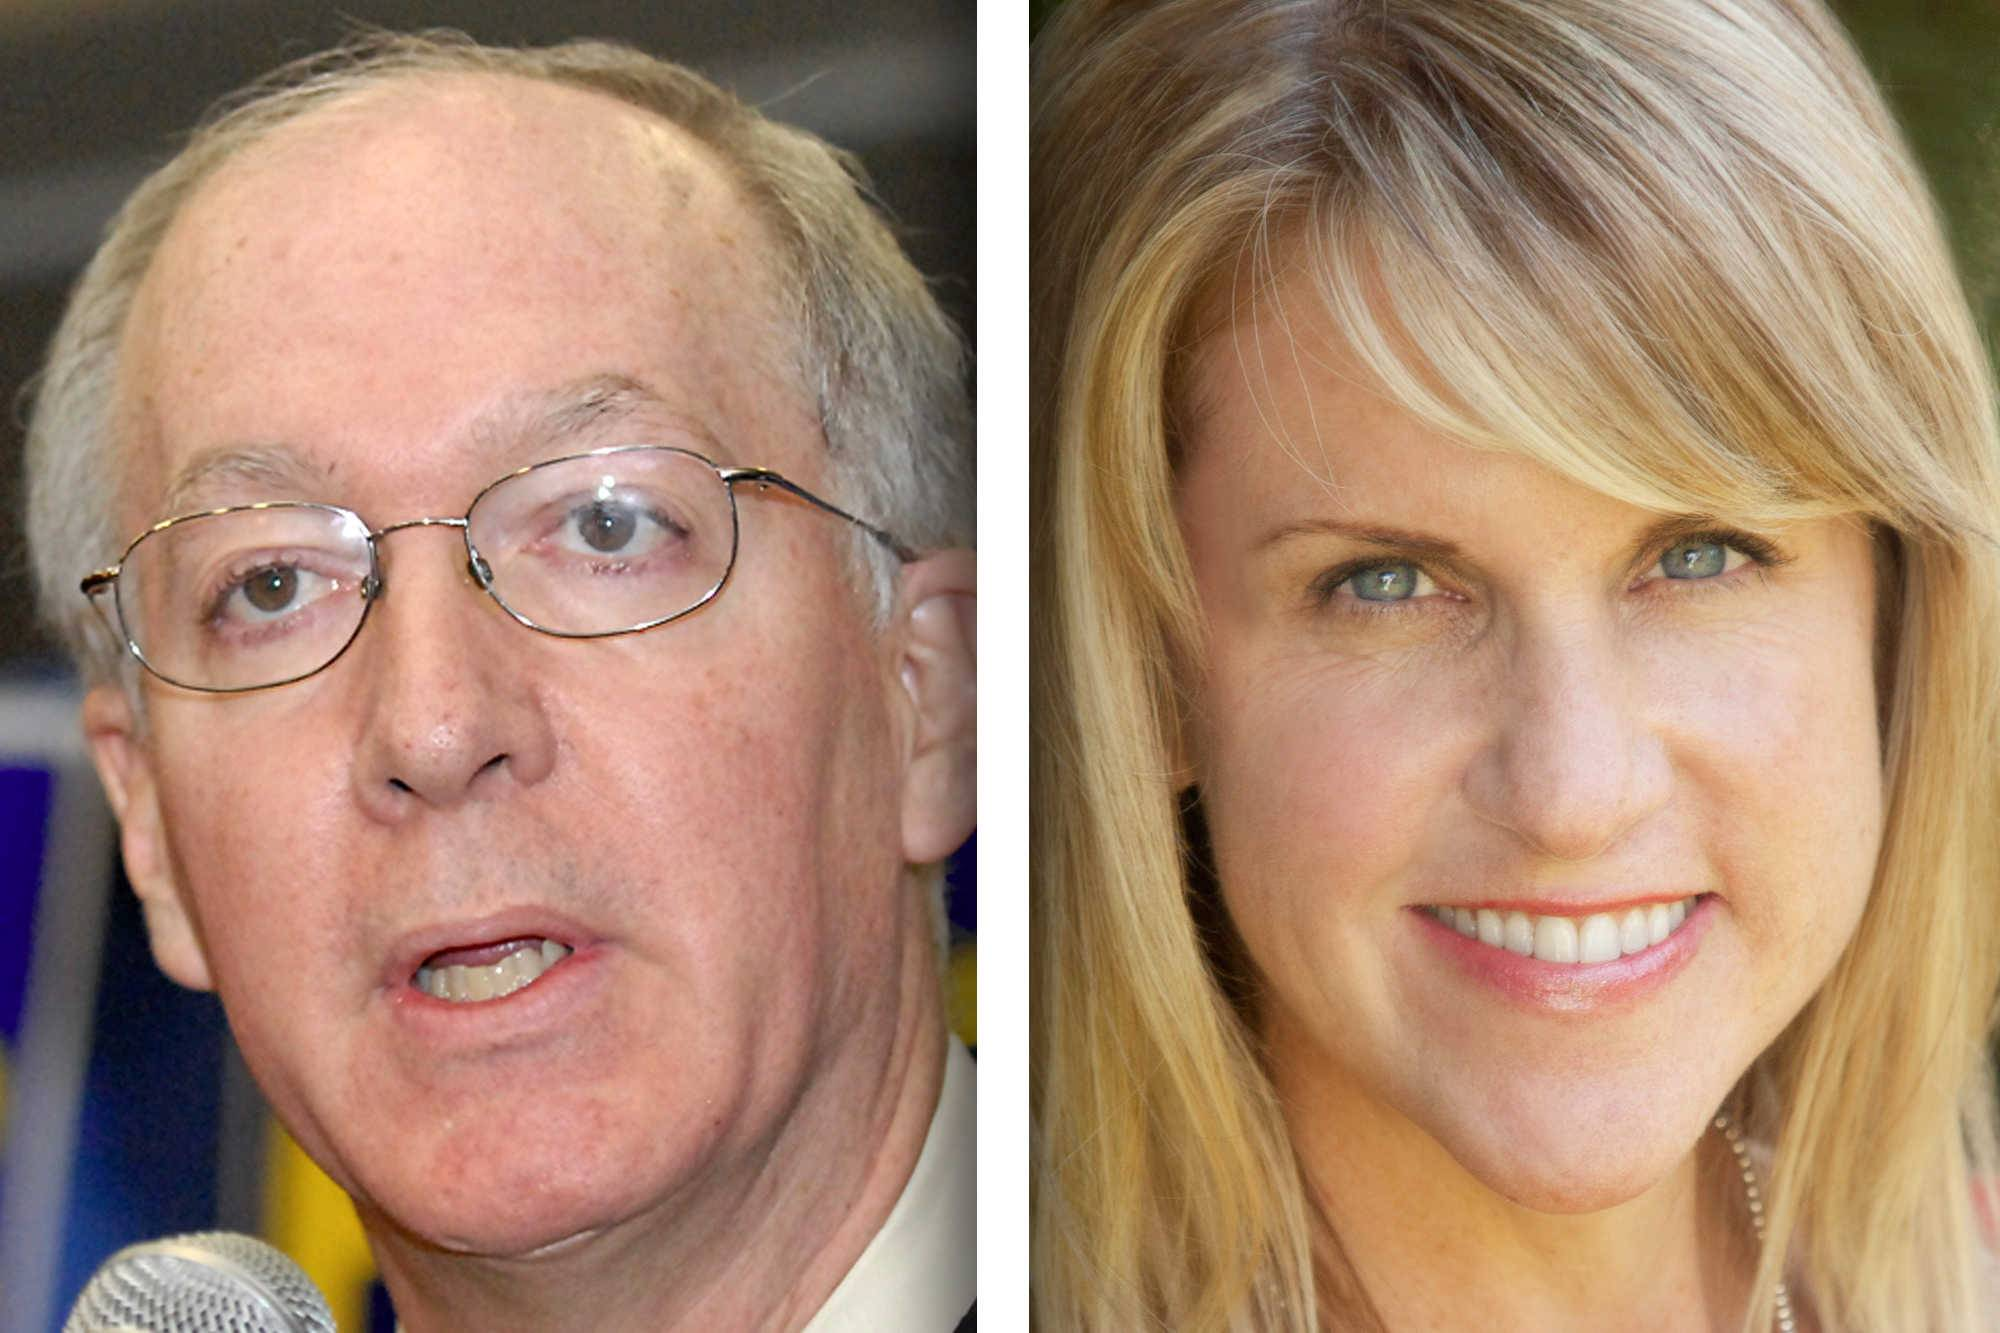 Democrat Bill Foster and Republican Tonia Khouri are running to represent the 11th Congressional District.